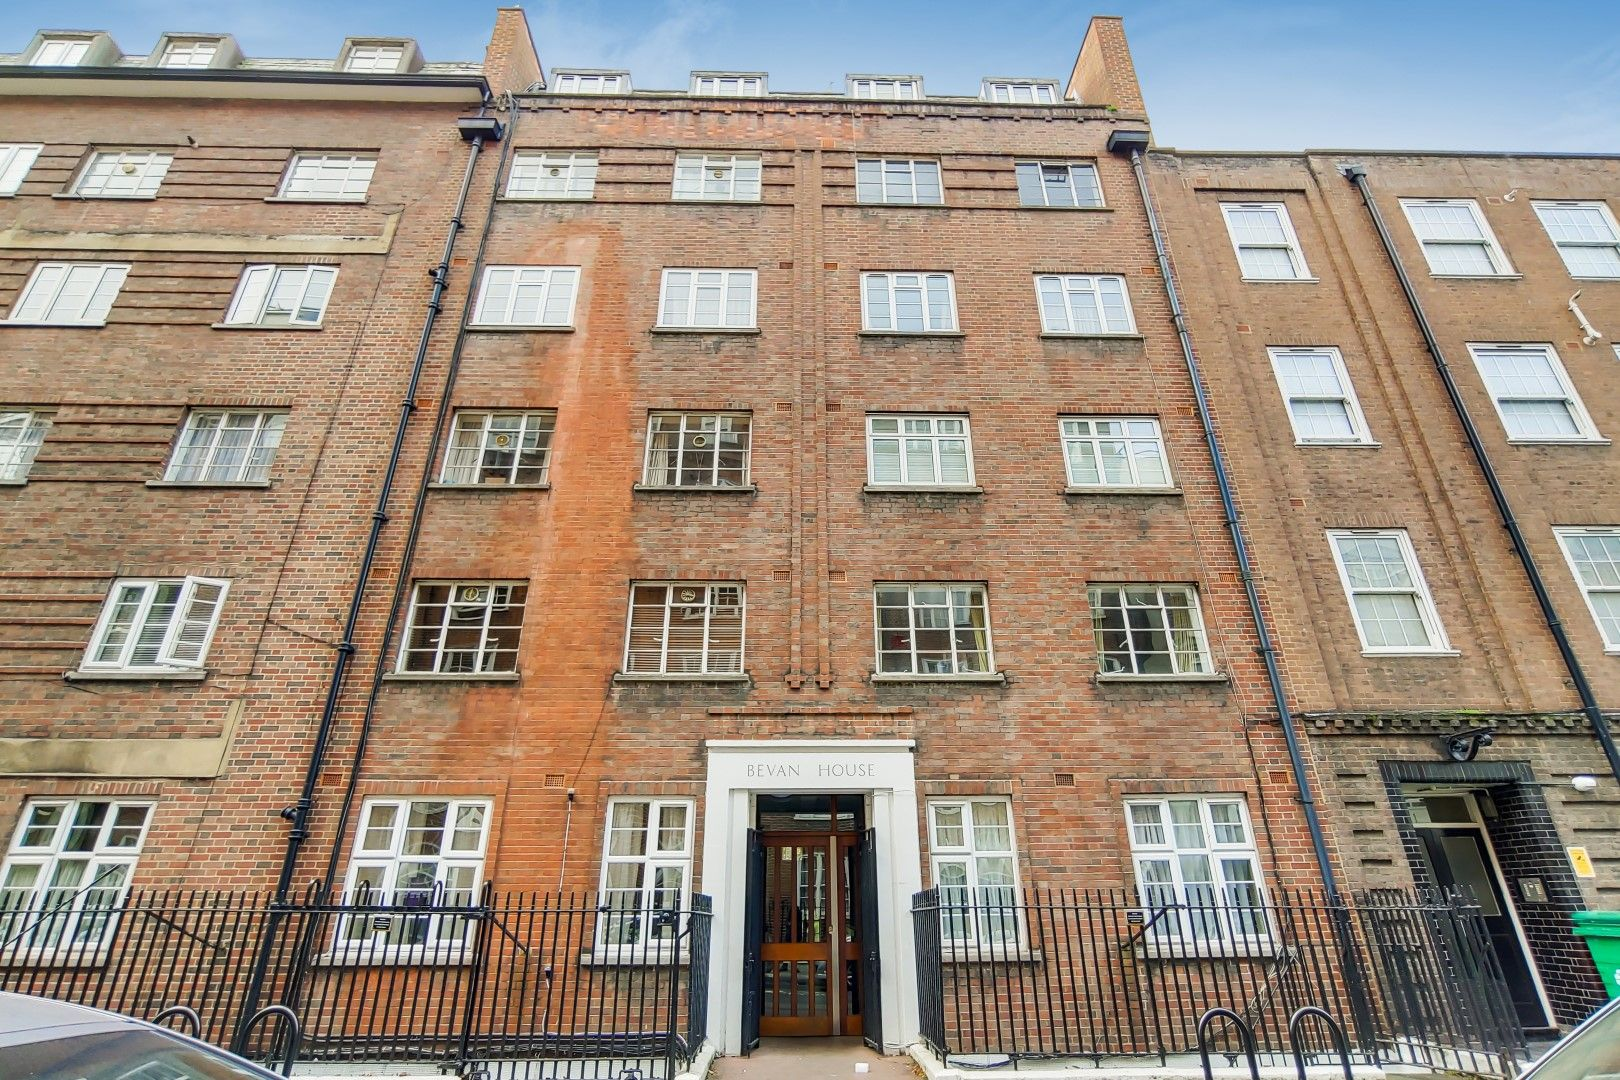 2 bed flat to rent in Bevan House - Property Image 1